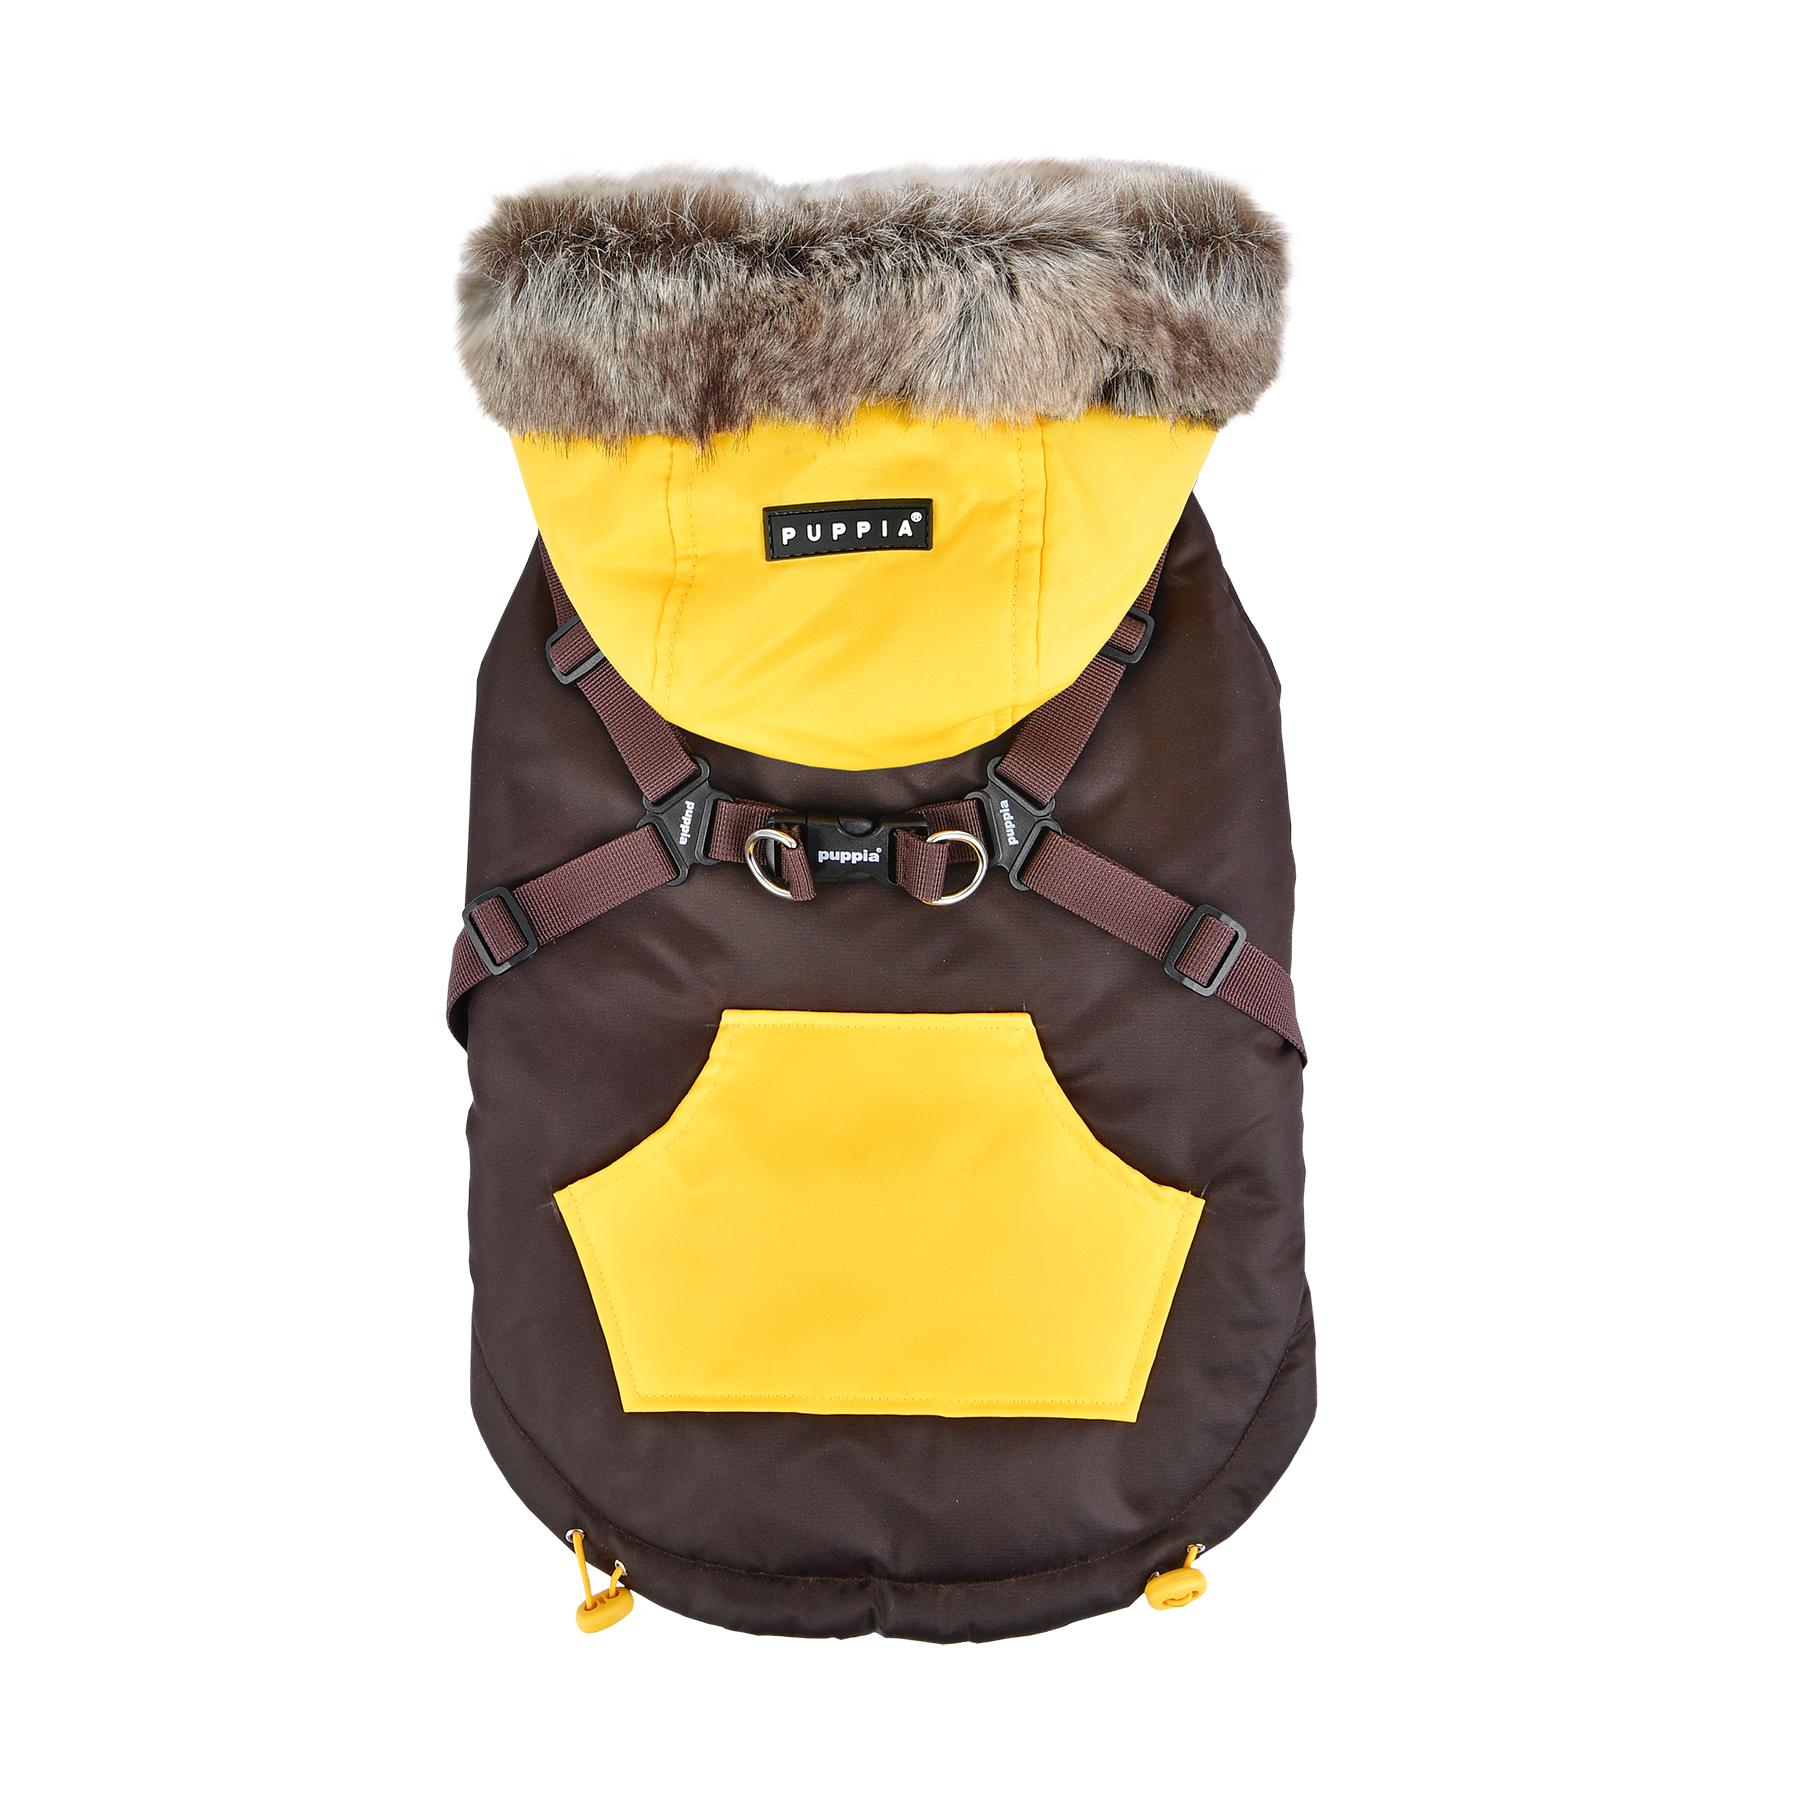 Orson Fleece Dog Vest By Puppia - Brown and Yellow